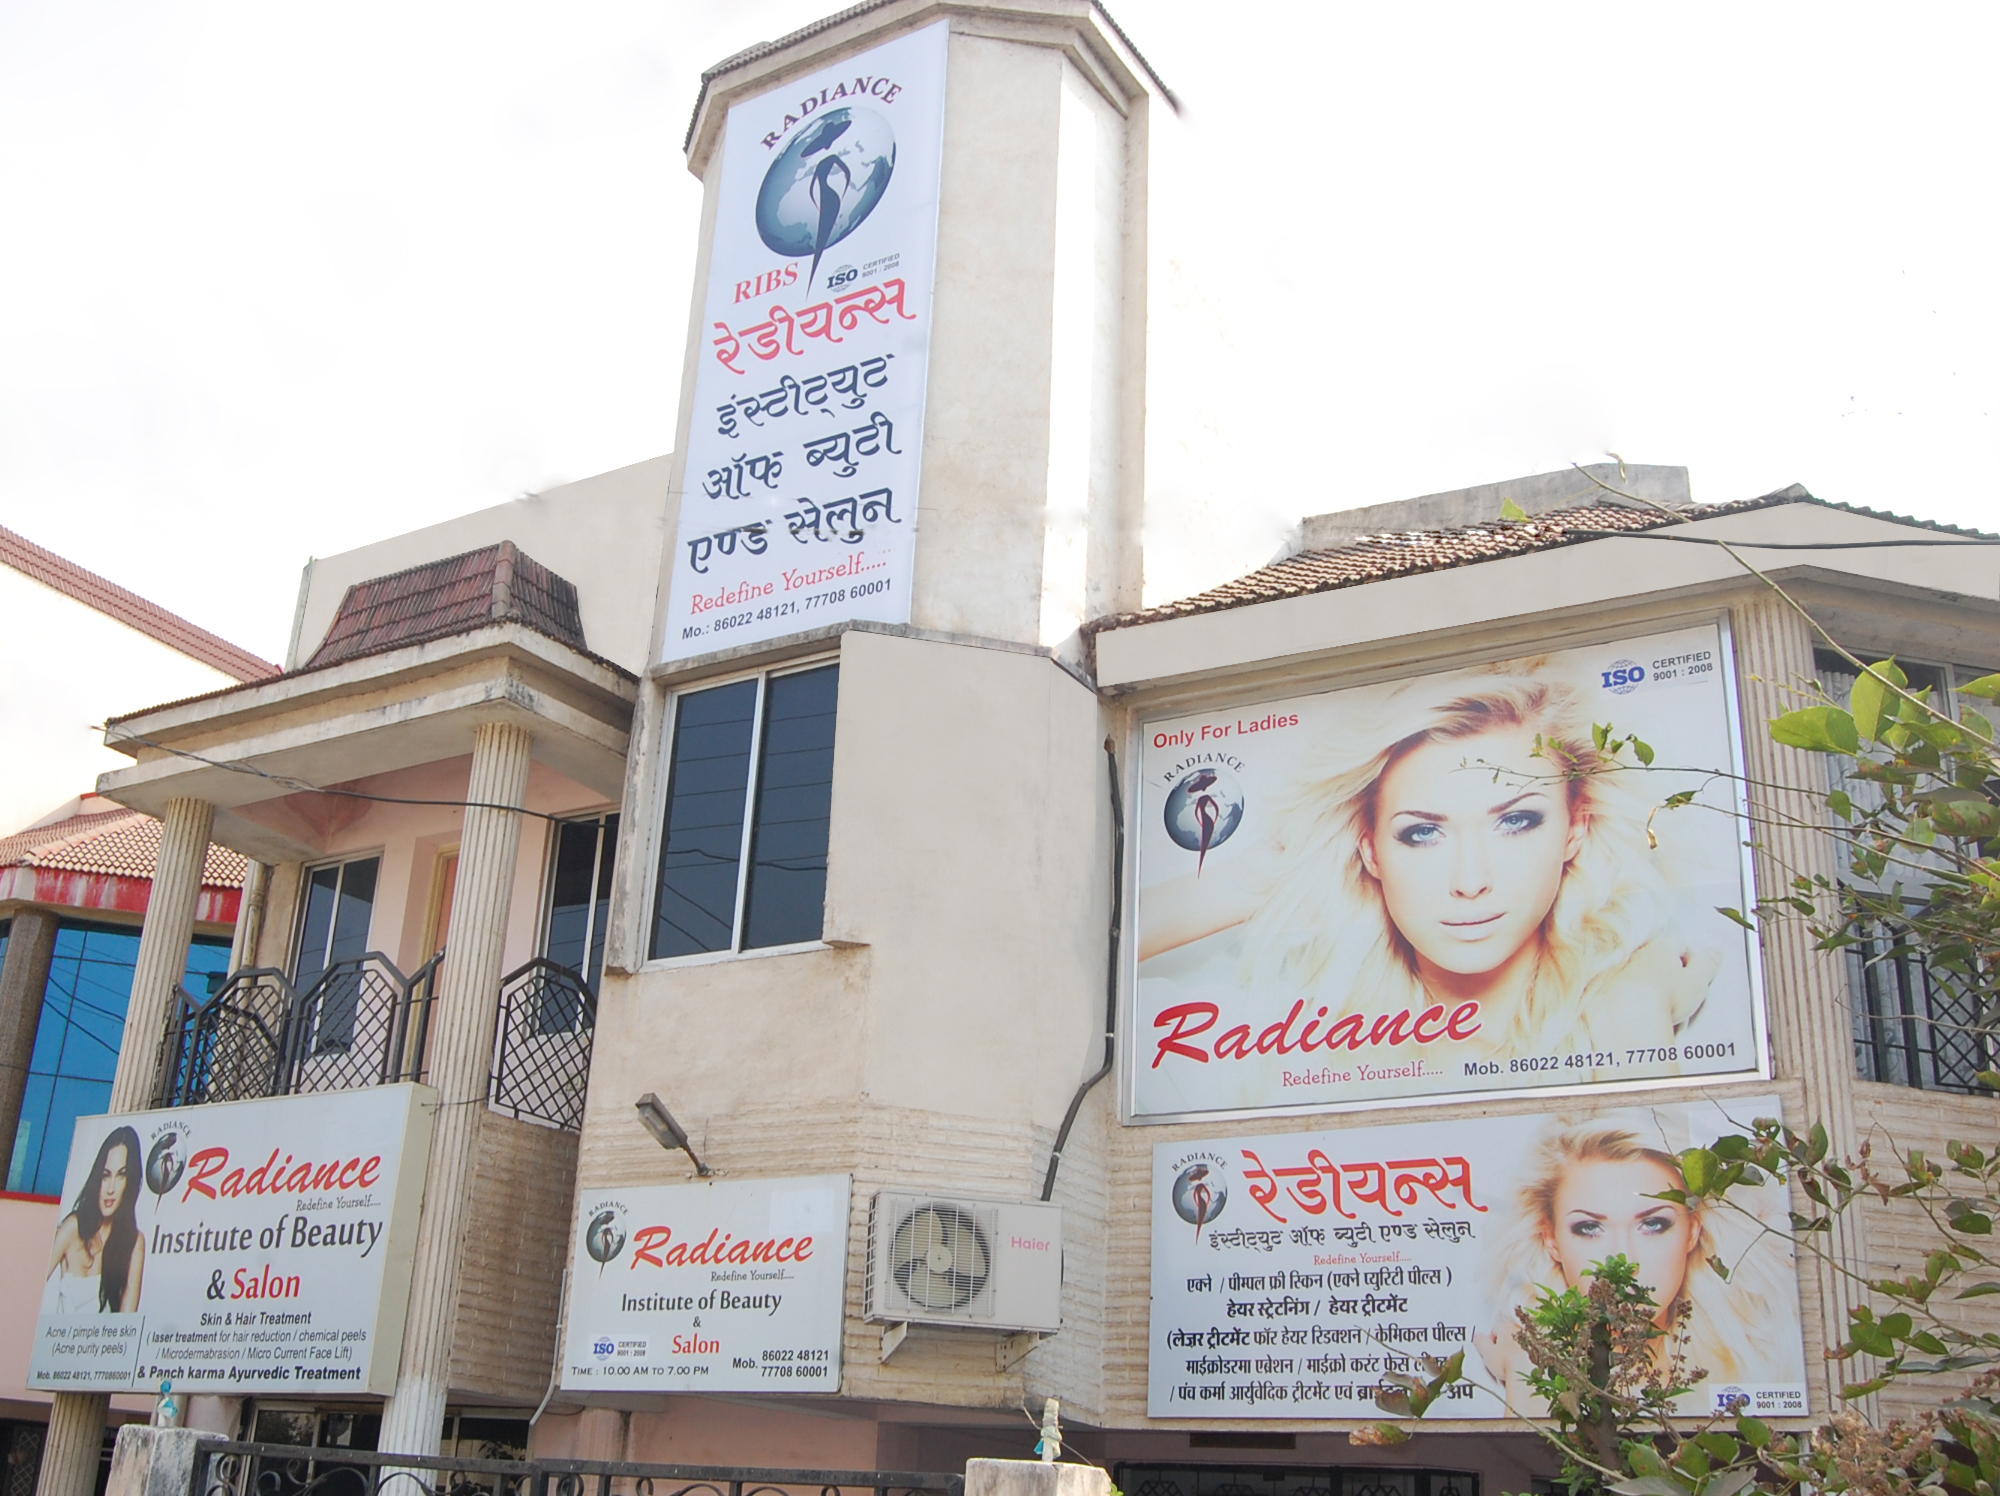 Radiance Institute Of Beauty & Saloon